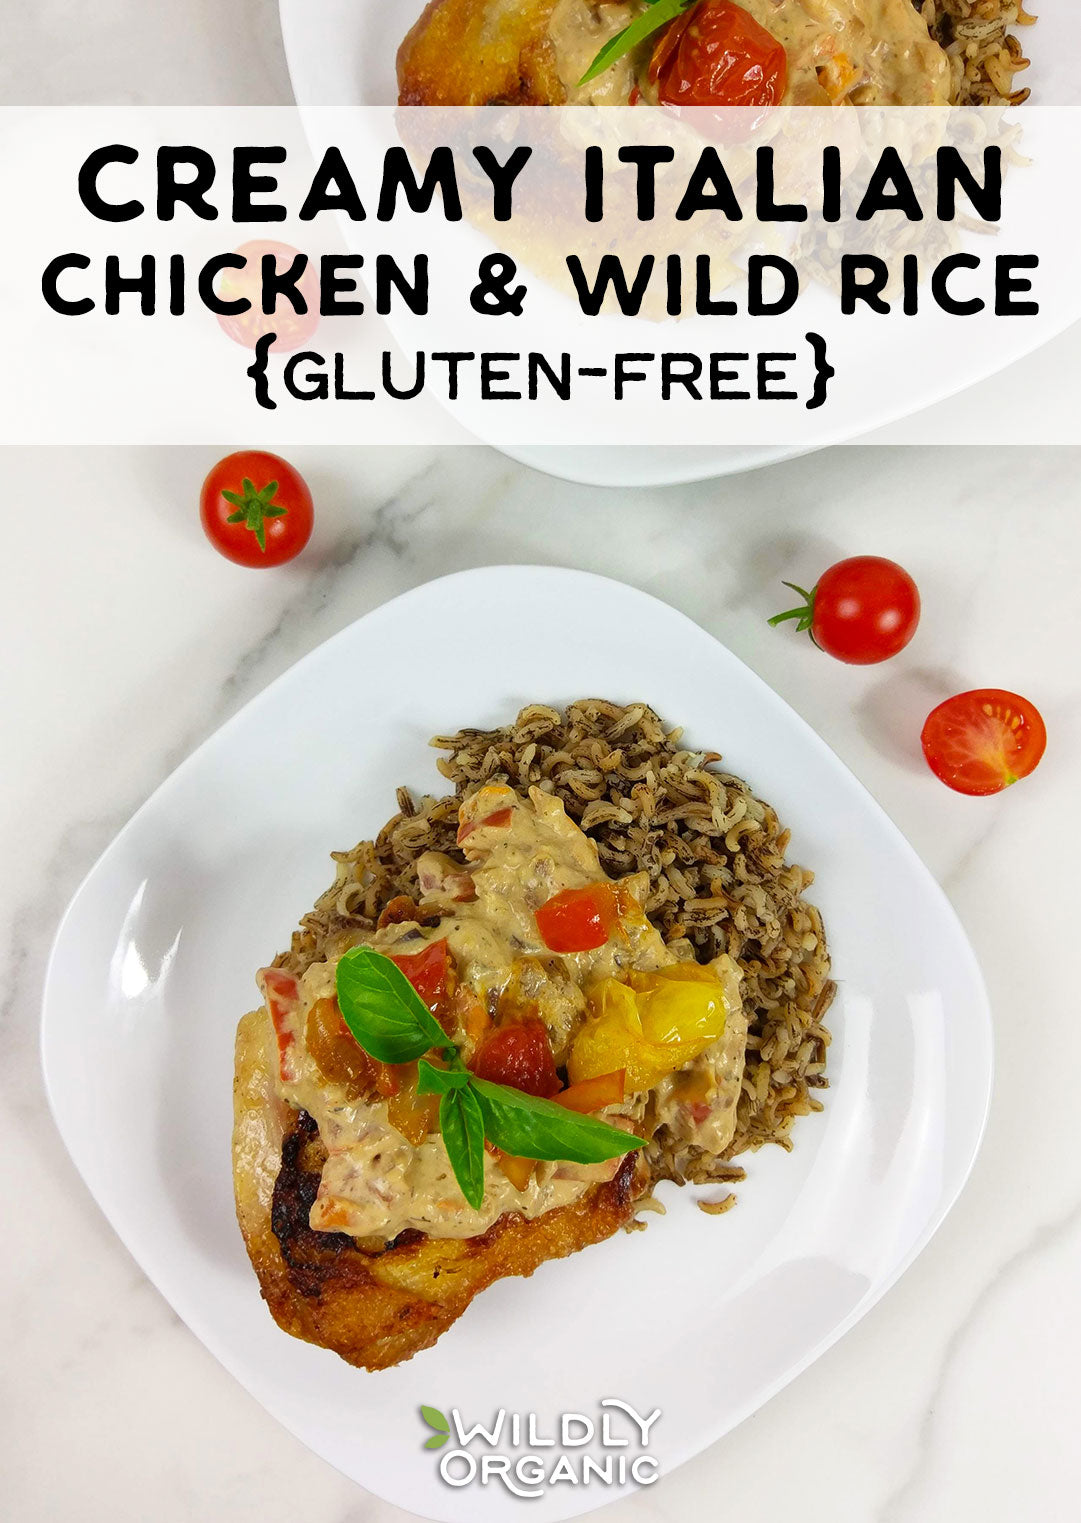 Photo of Creamy Italian Chicken and Wild Rice | This easy Creamy Italian Chicken and Wild Rice recipe uses Italian dressing for quick and delicious flavor. It's perfect for weeknight meals that the whole family will love. It's ready in just under an hour, too. Use precooked wild rice for an even faster prep time. What's not to love about this gluten-free meal?